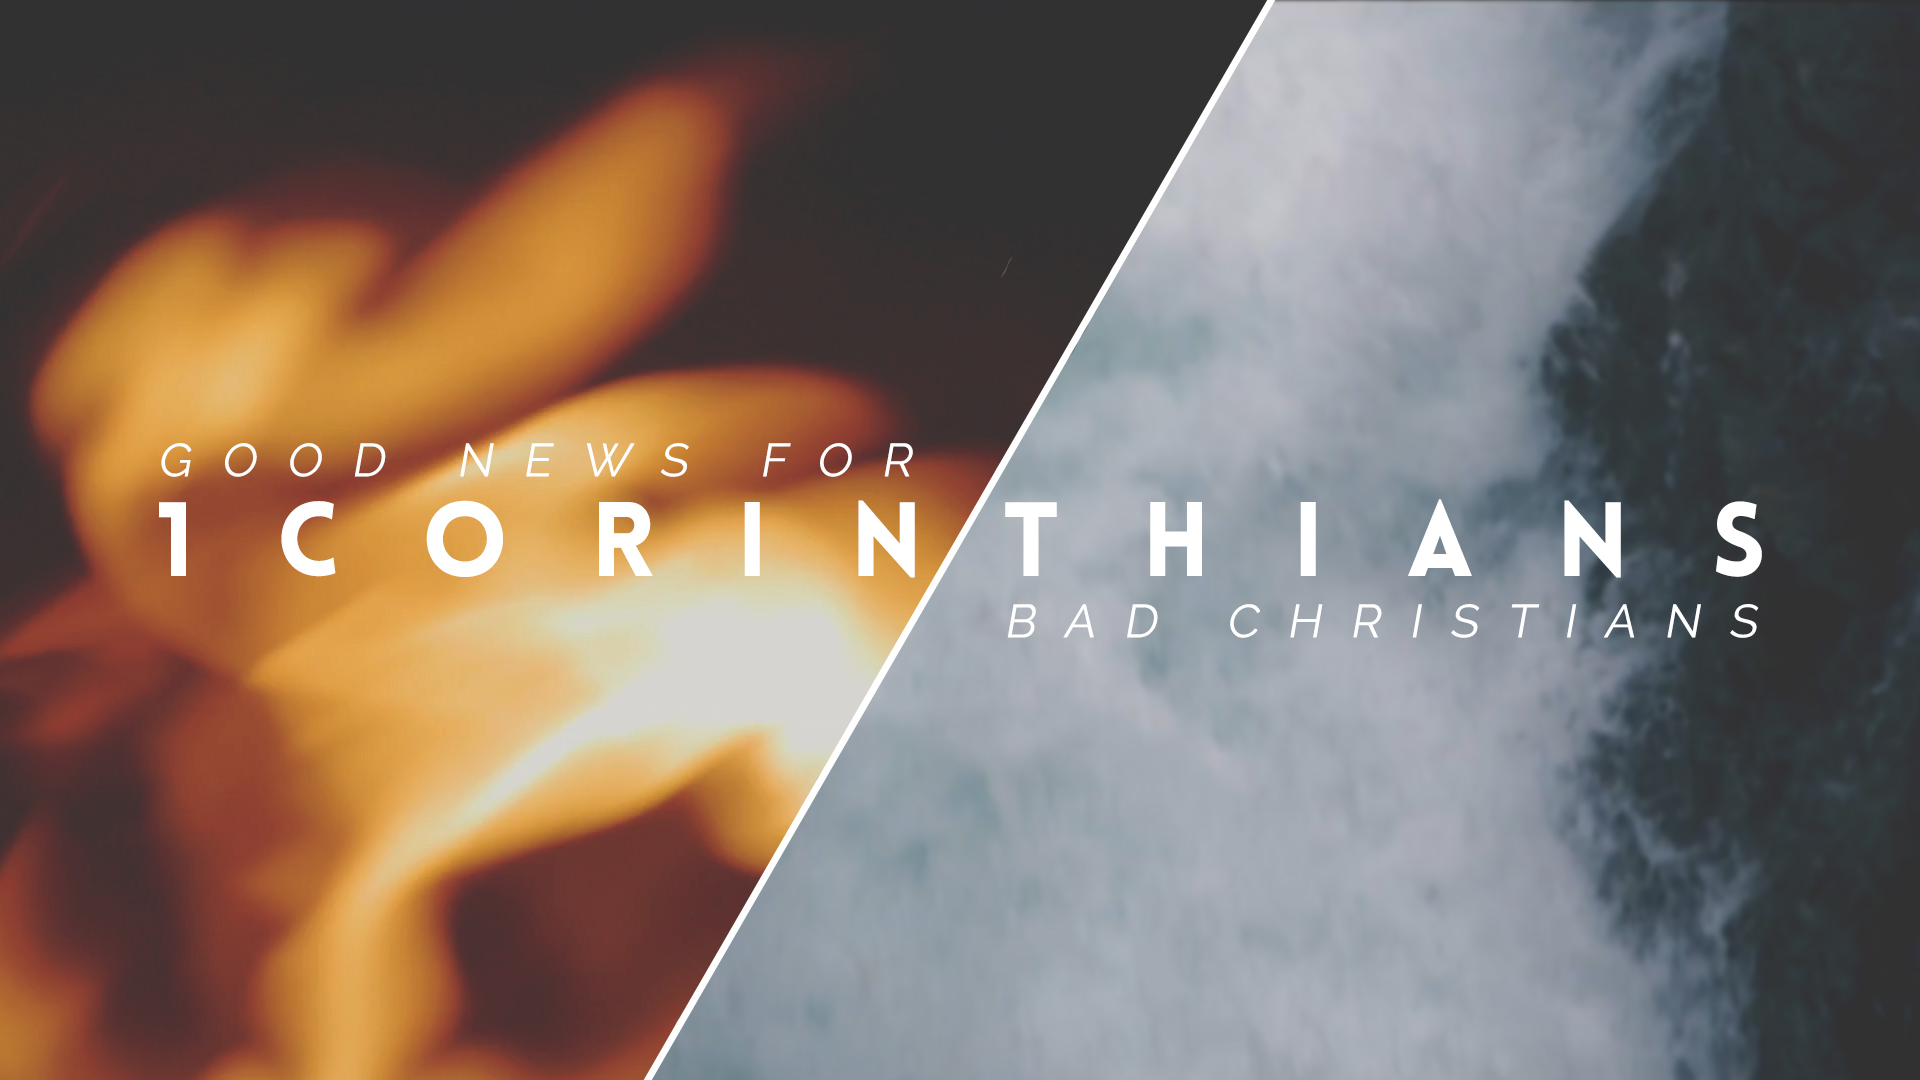 1 Corinthians: Good News For Bad Christians